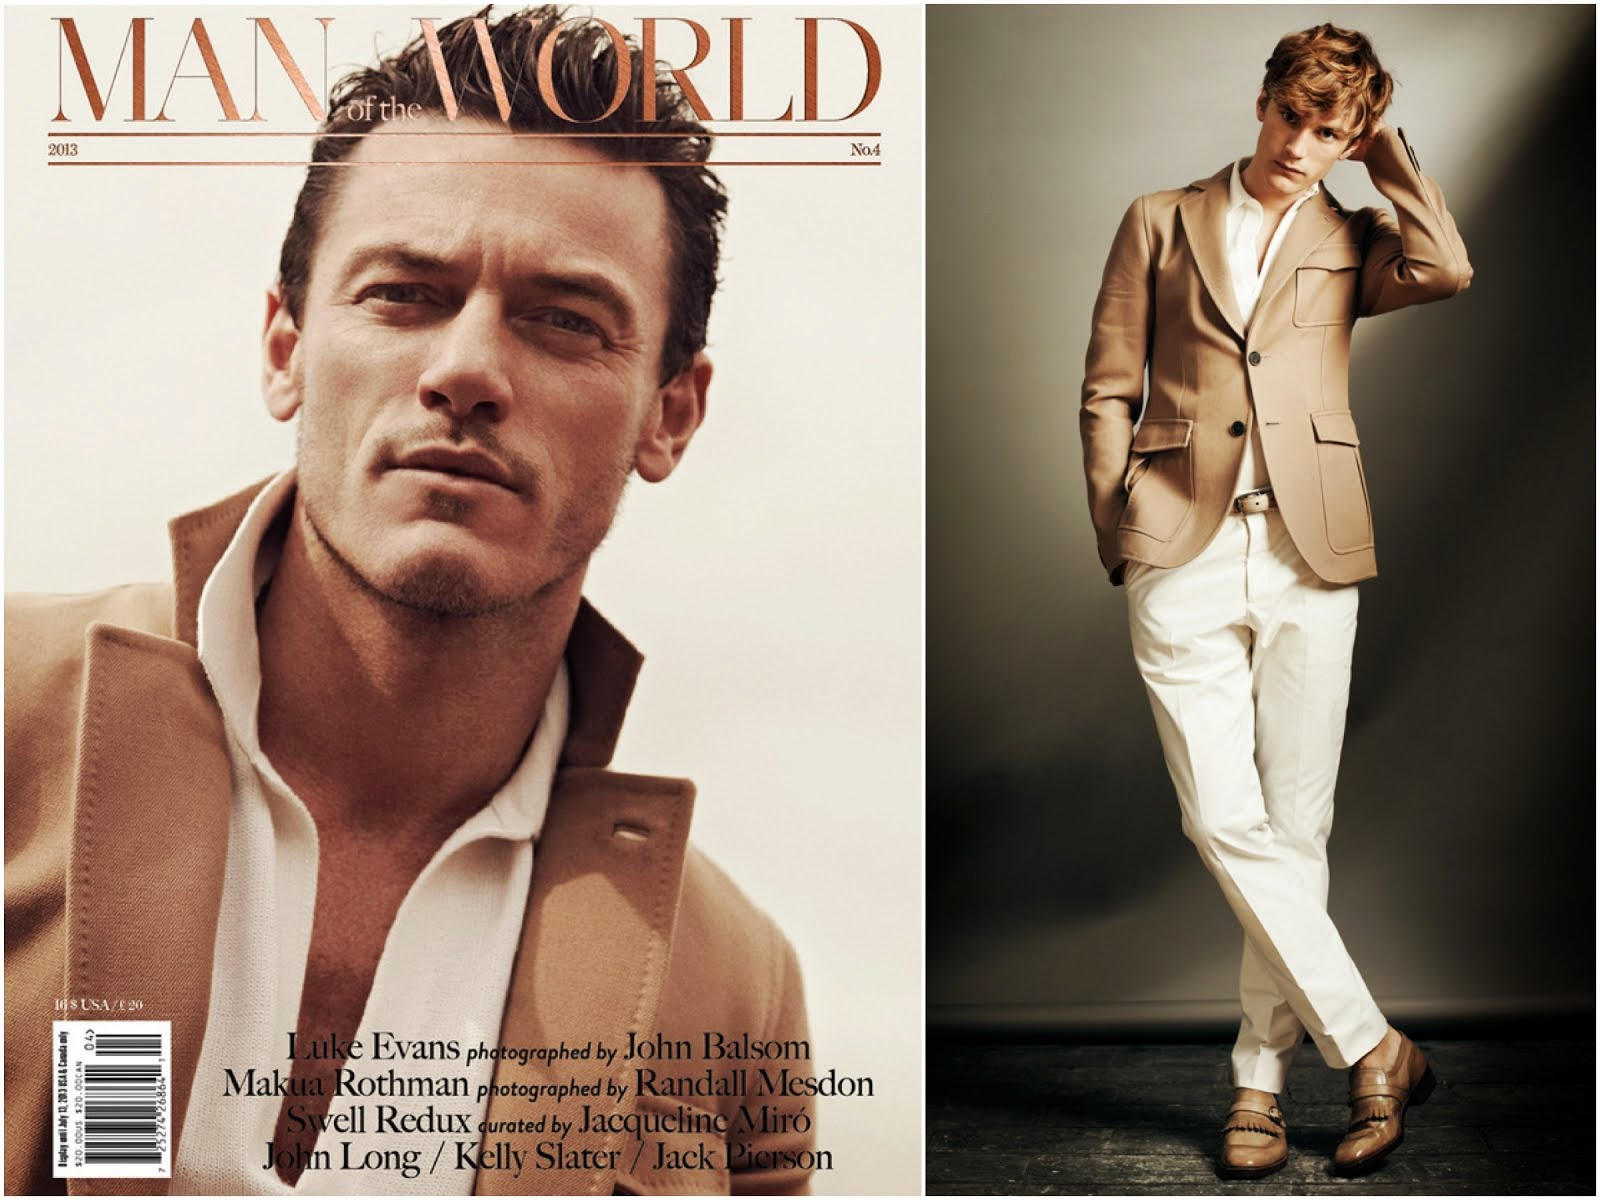 00O00 Menswear Blog: Luke Evans in Berluti - Man of the World issue 4